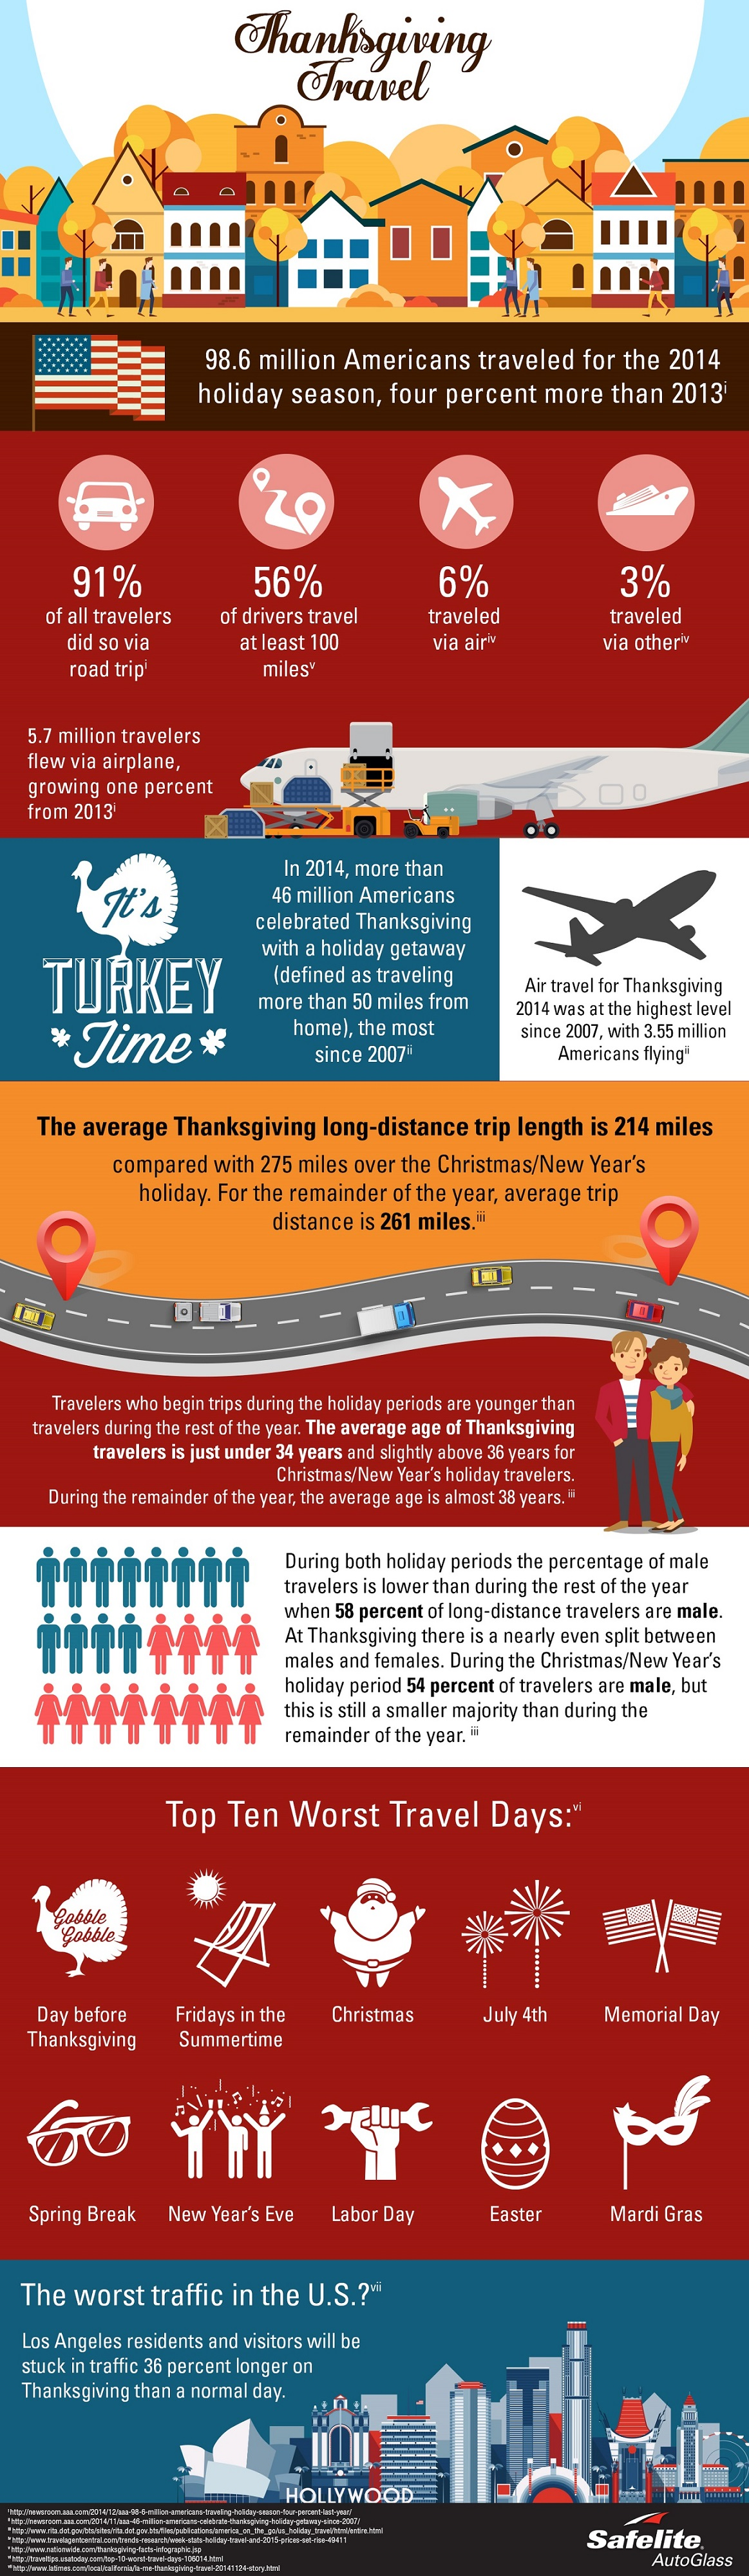 Safelite shares holiday road trip insights in this infographic.